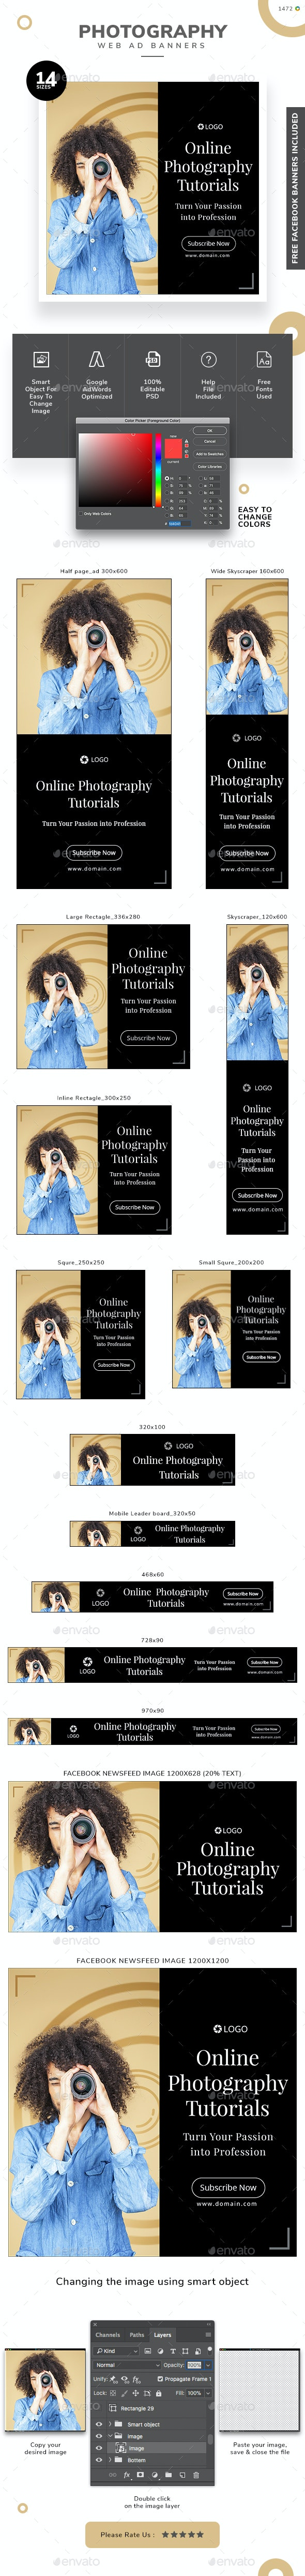 Photography Banner Set - Banners & Ads Web Elements